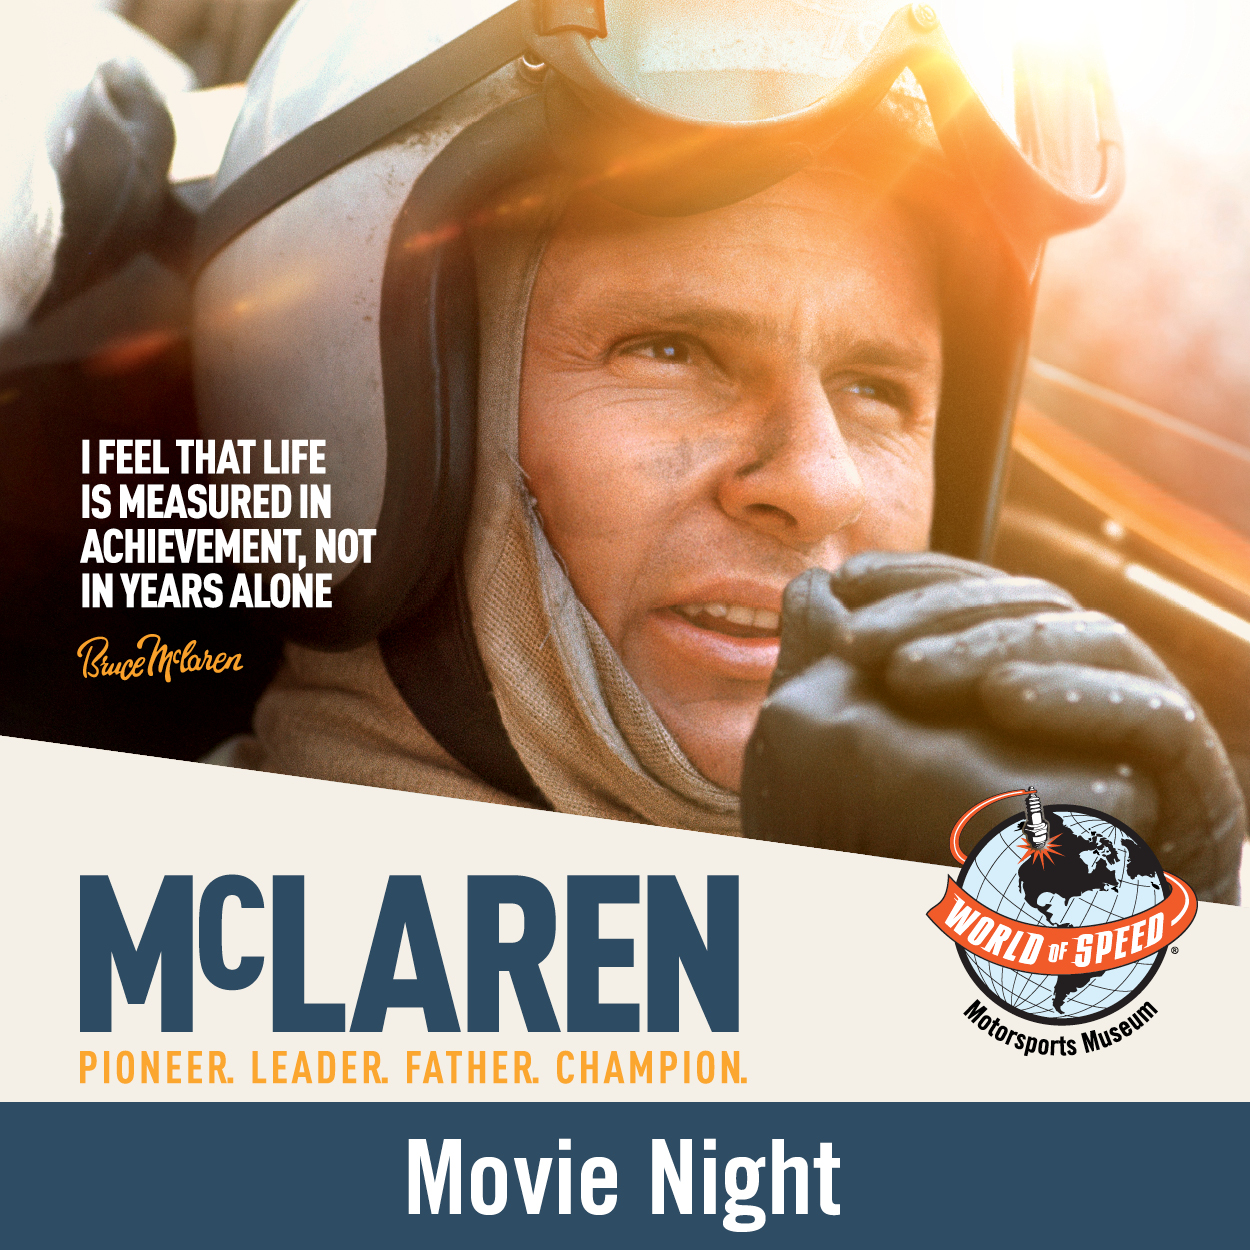 McLaren-Movie-Night-Event-Calendar.jpg